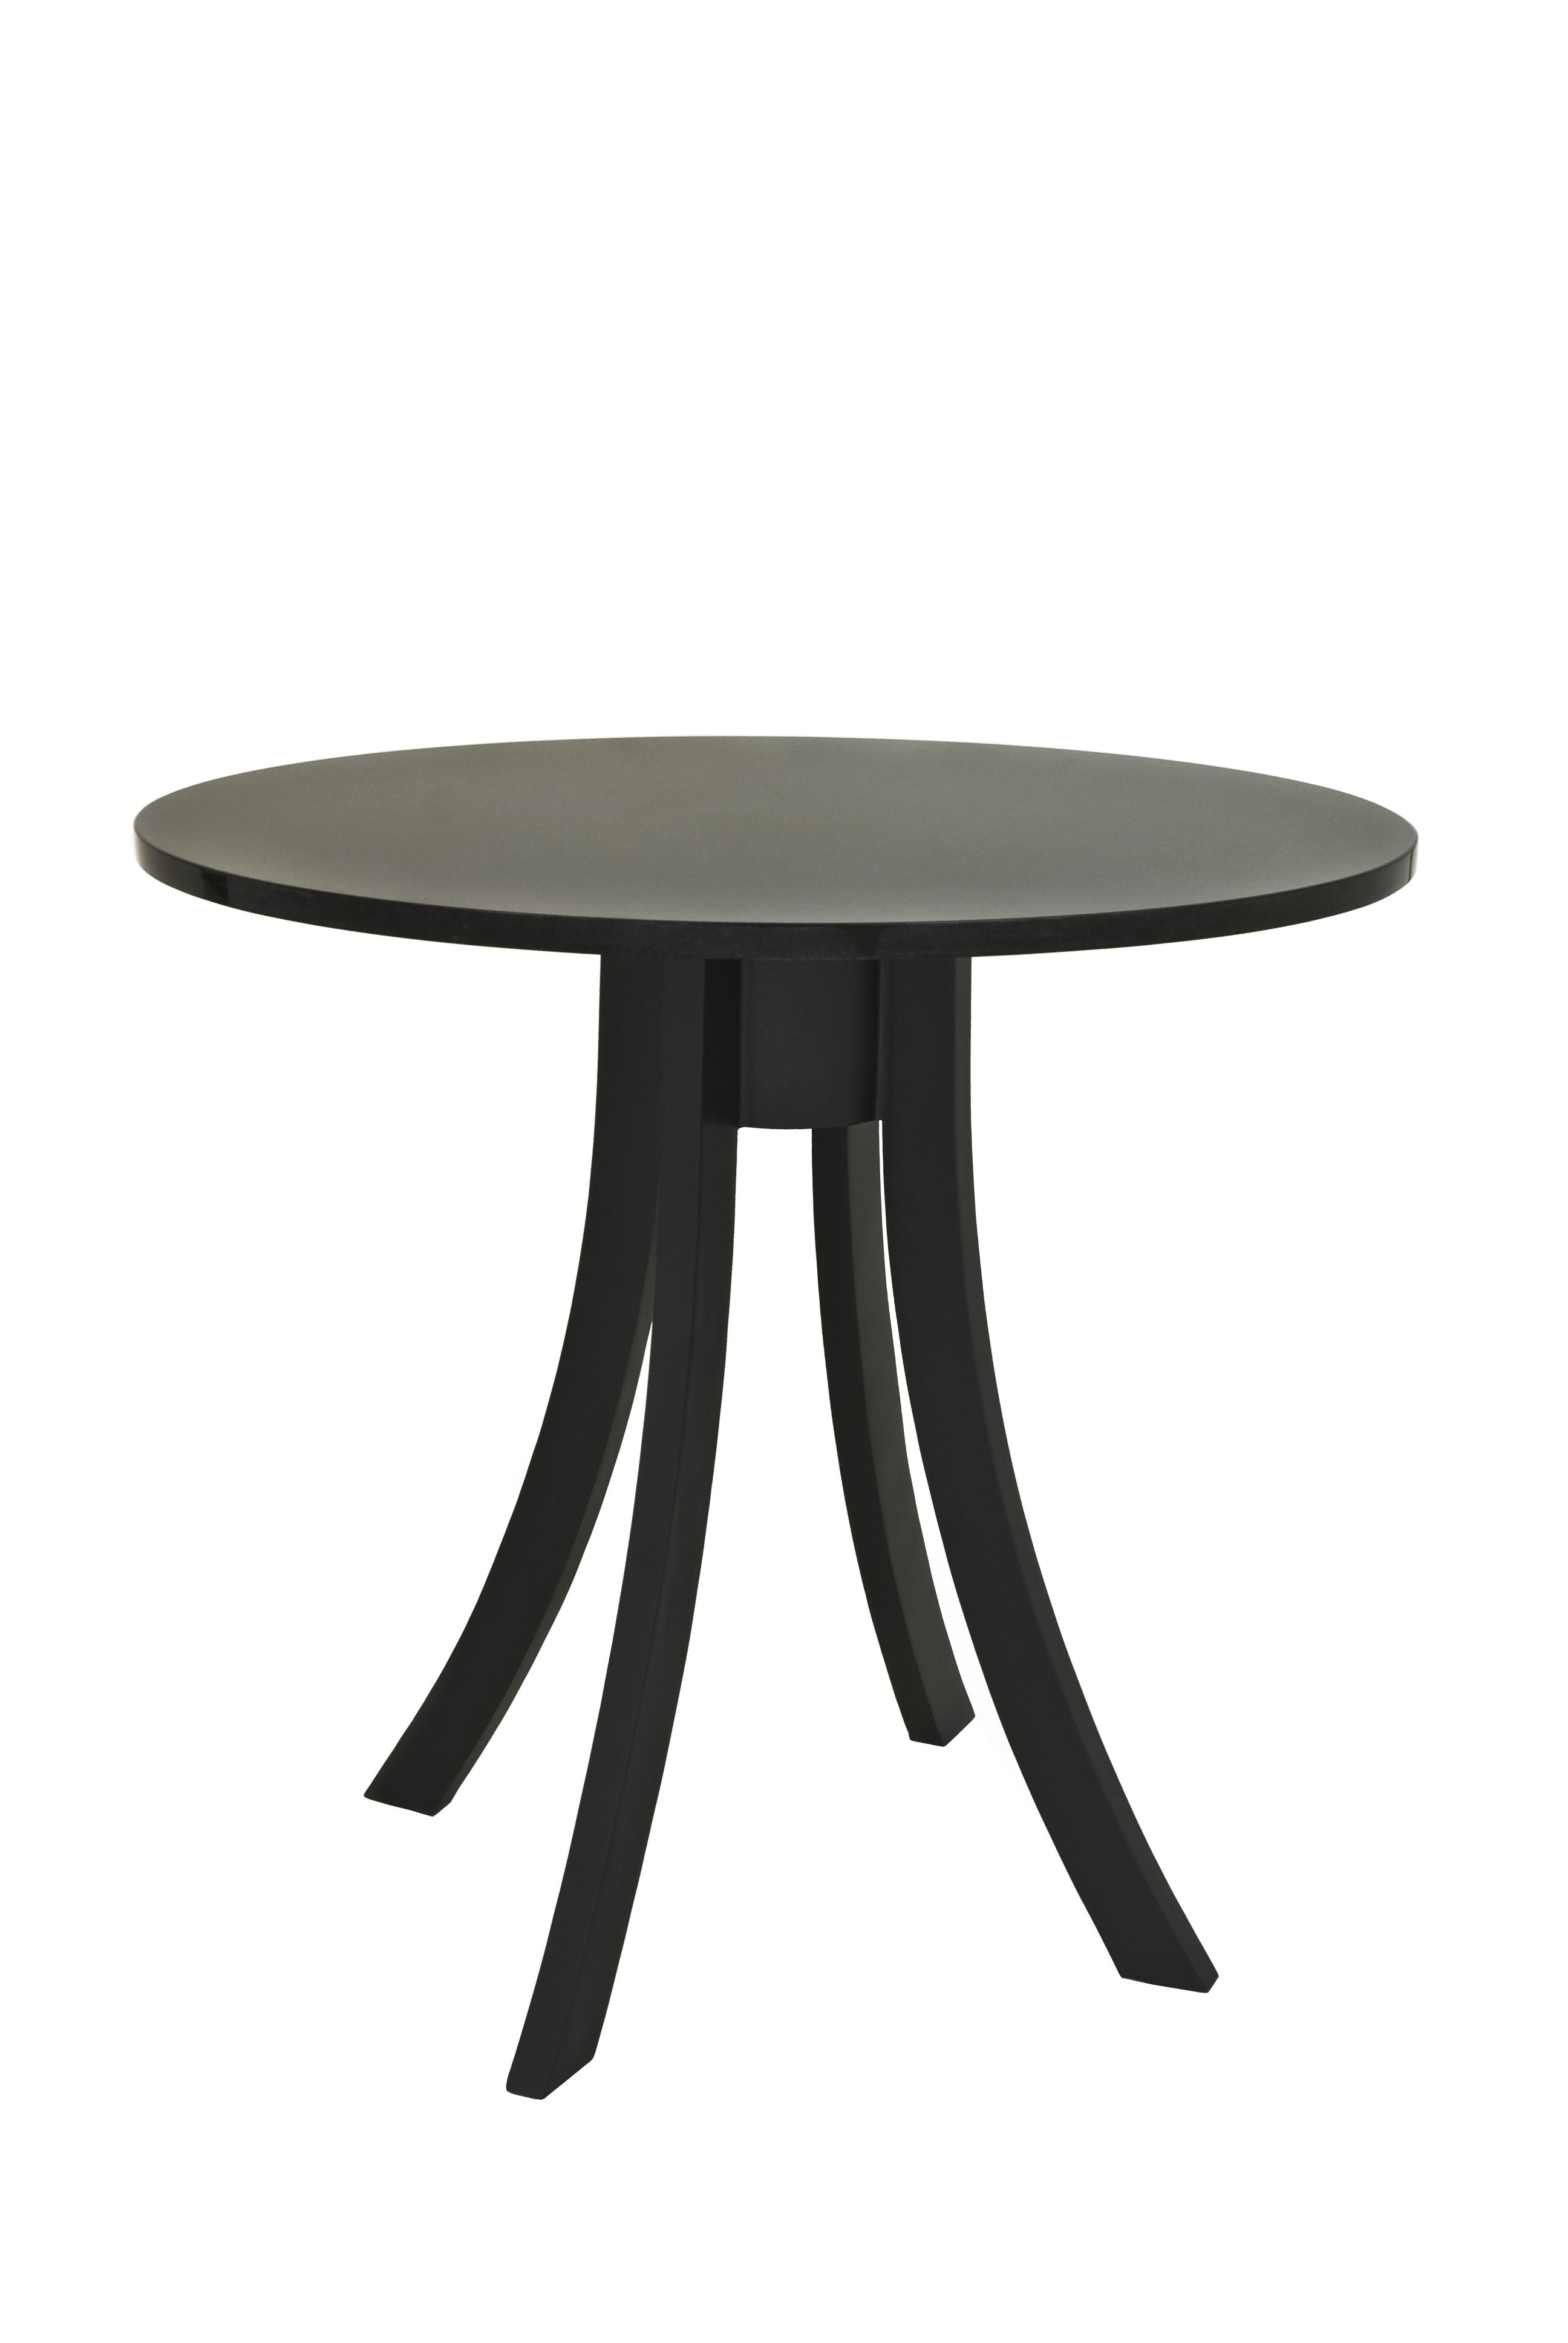 The Medusa End Table Finished In Matte Black Painted Base With Absolute Black Granite End Tables Table Dining Table